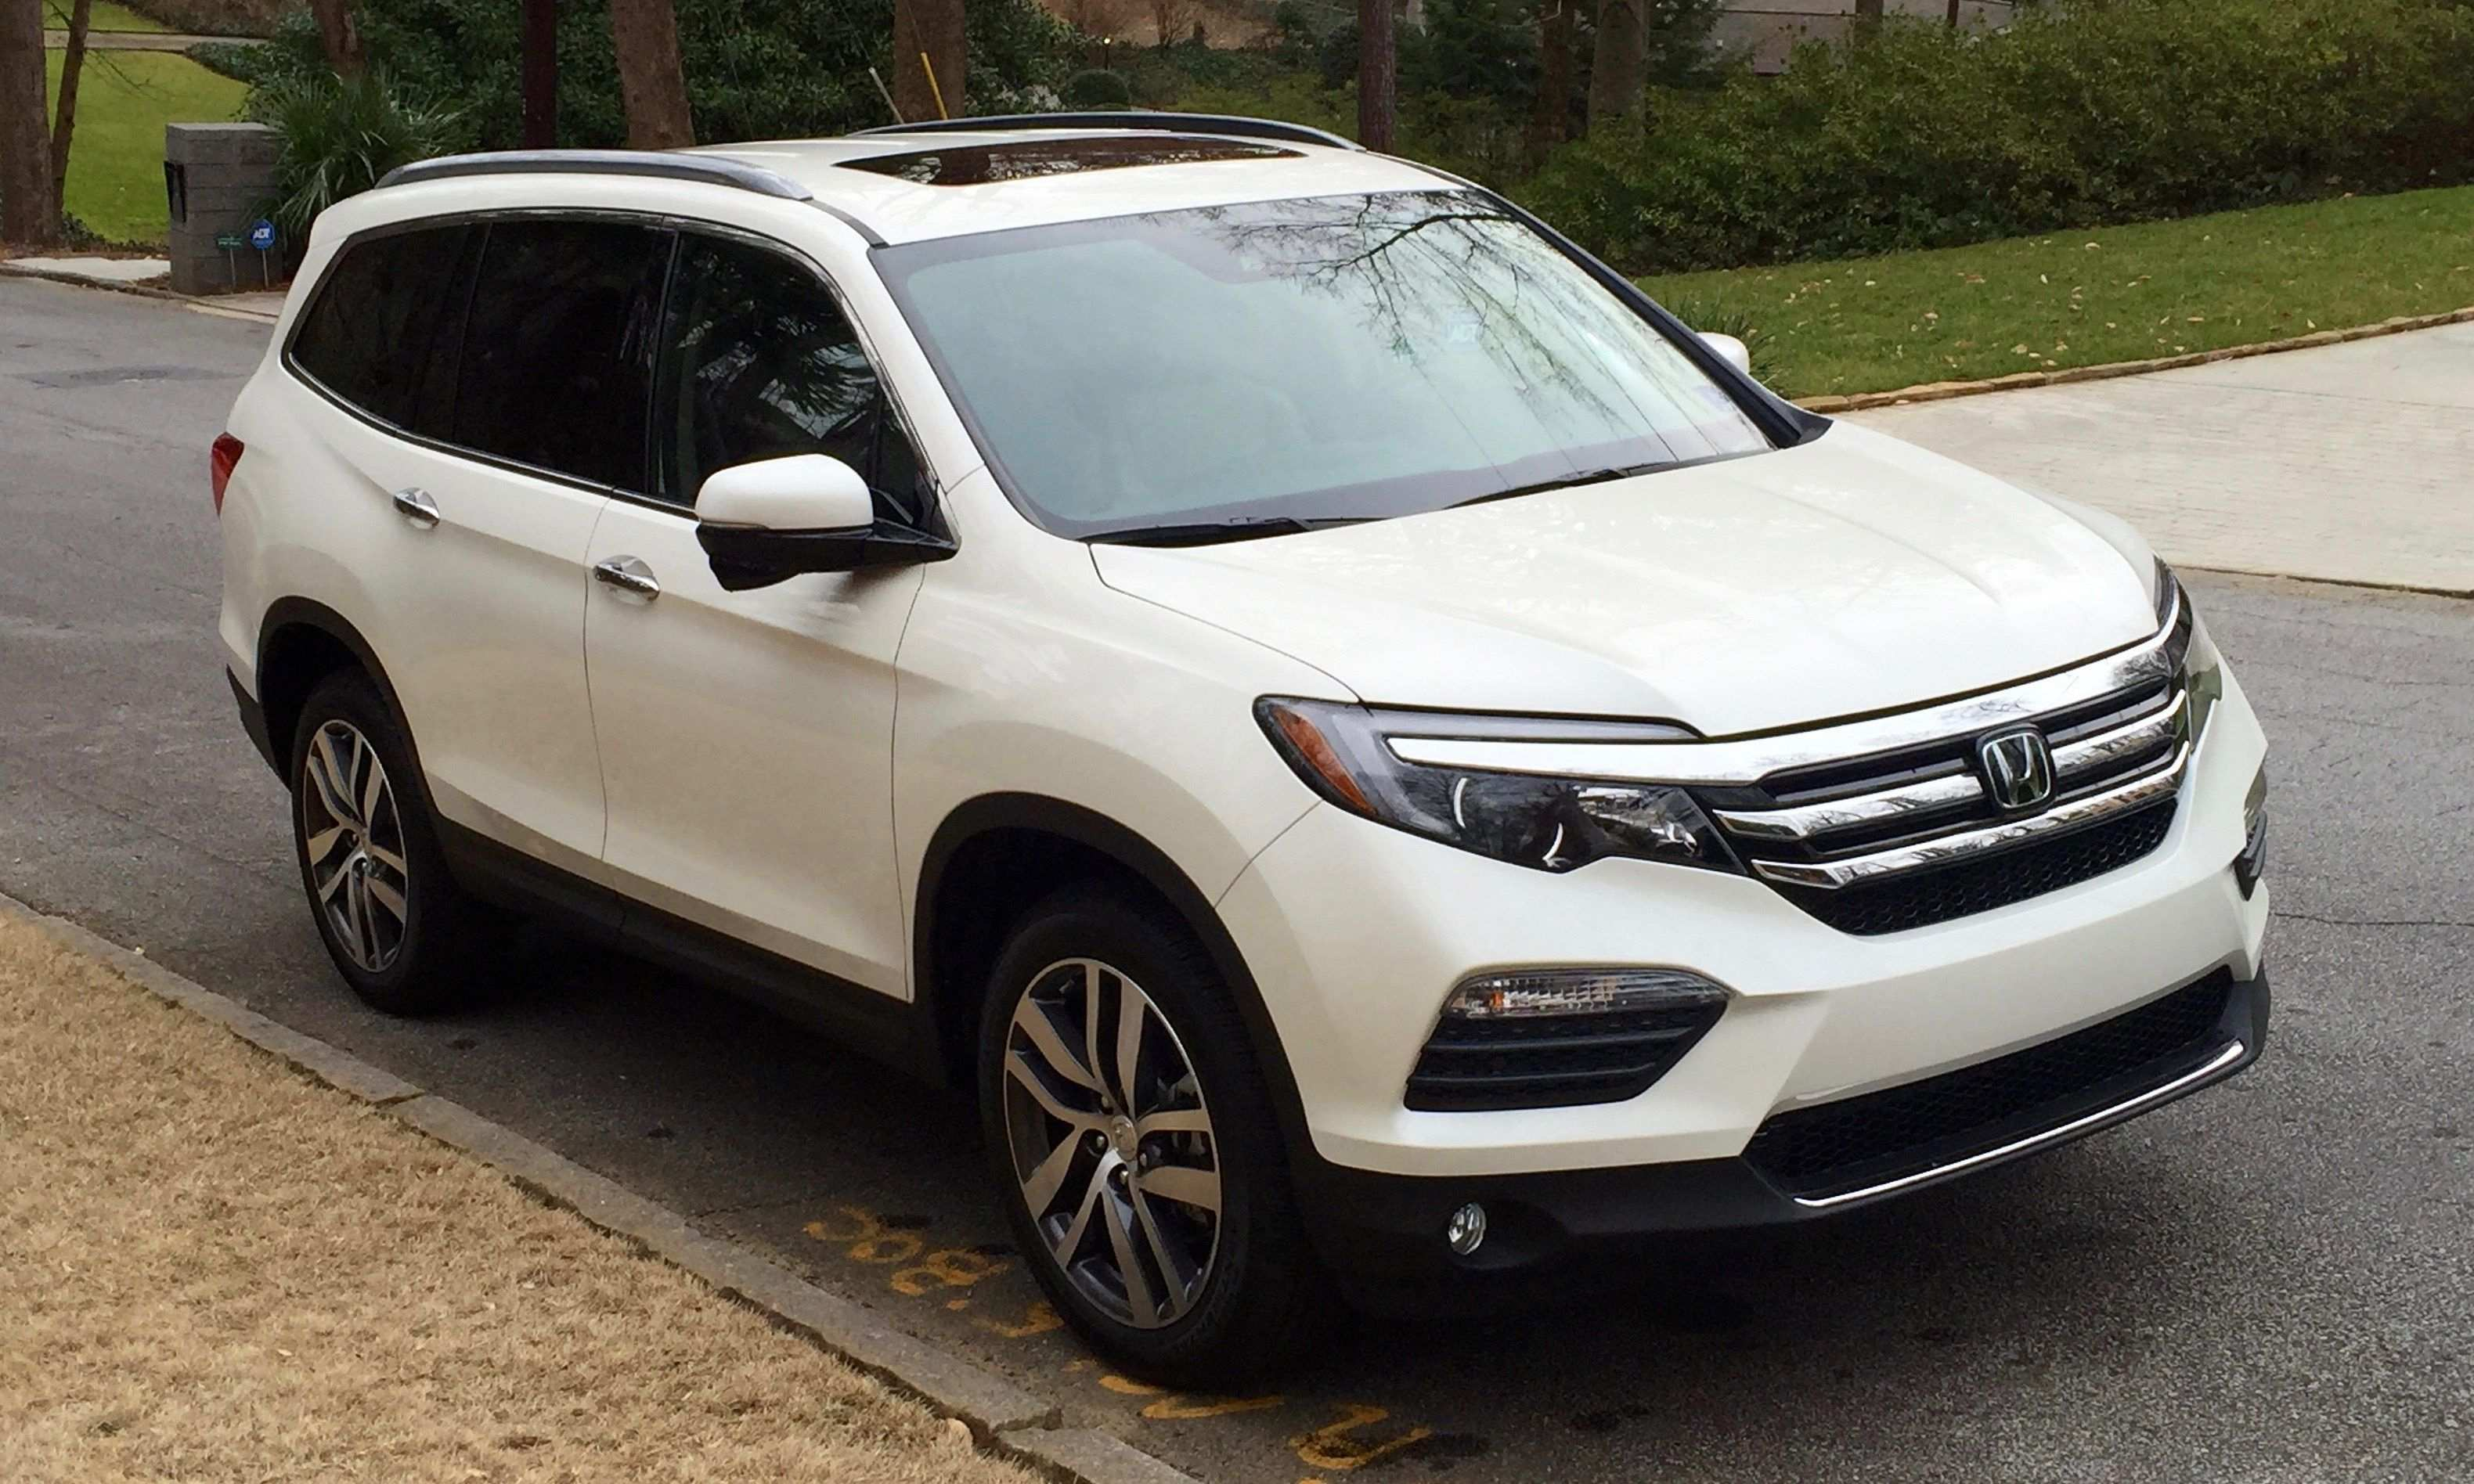 70 The Best 2020 Honda Pilot Release Date Picture